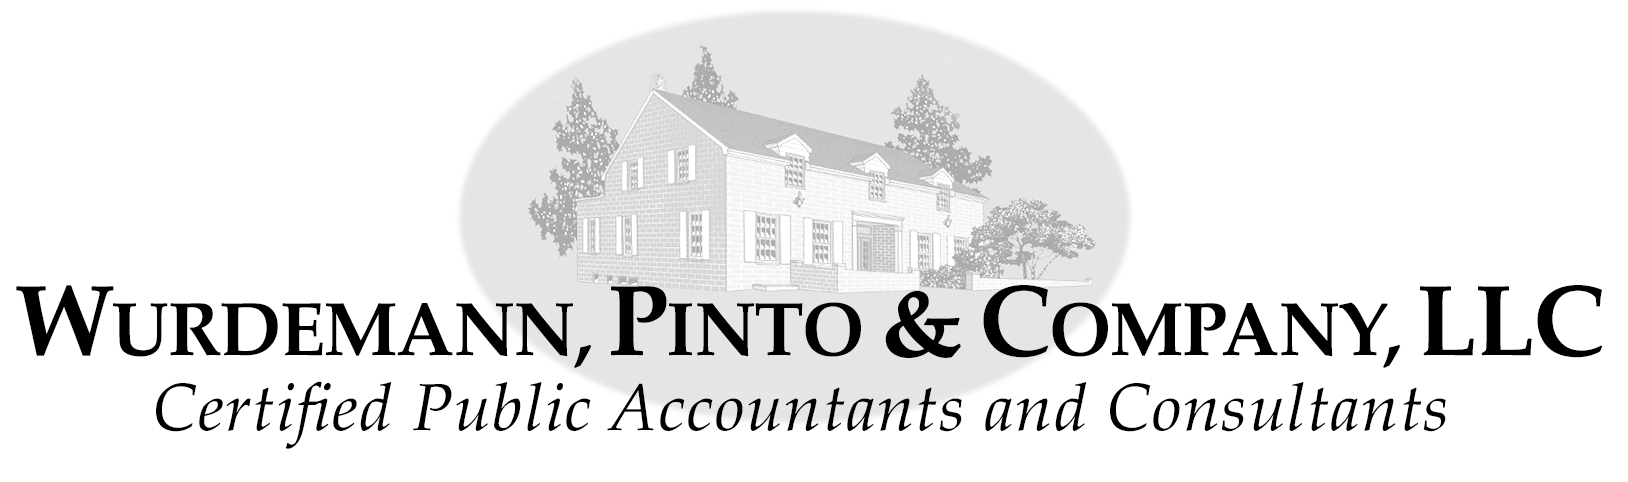 Hackensack, NJ Accounting Firm | Business Valuation | Wurdemann, Pinto & Co. LLC